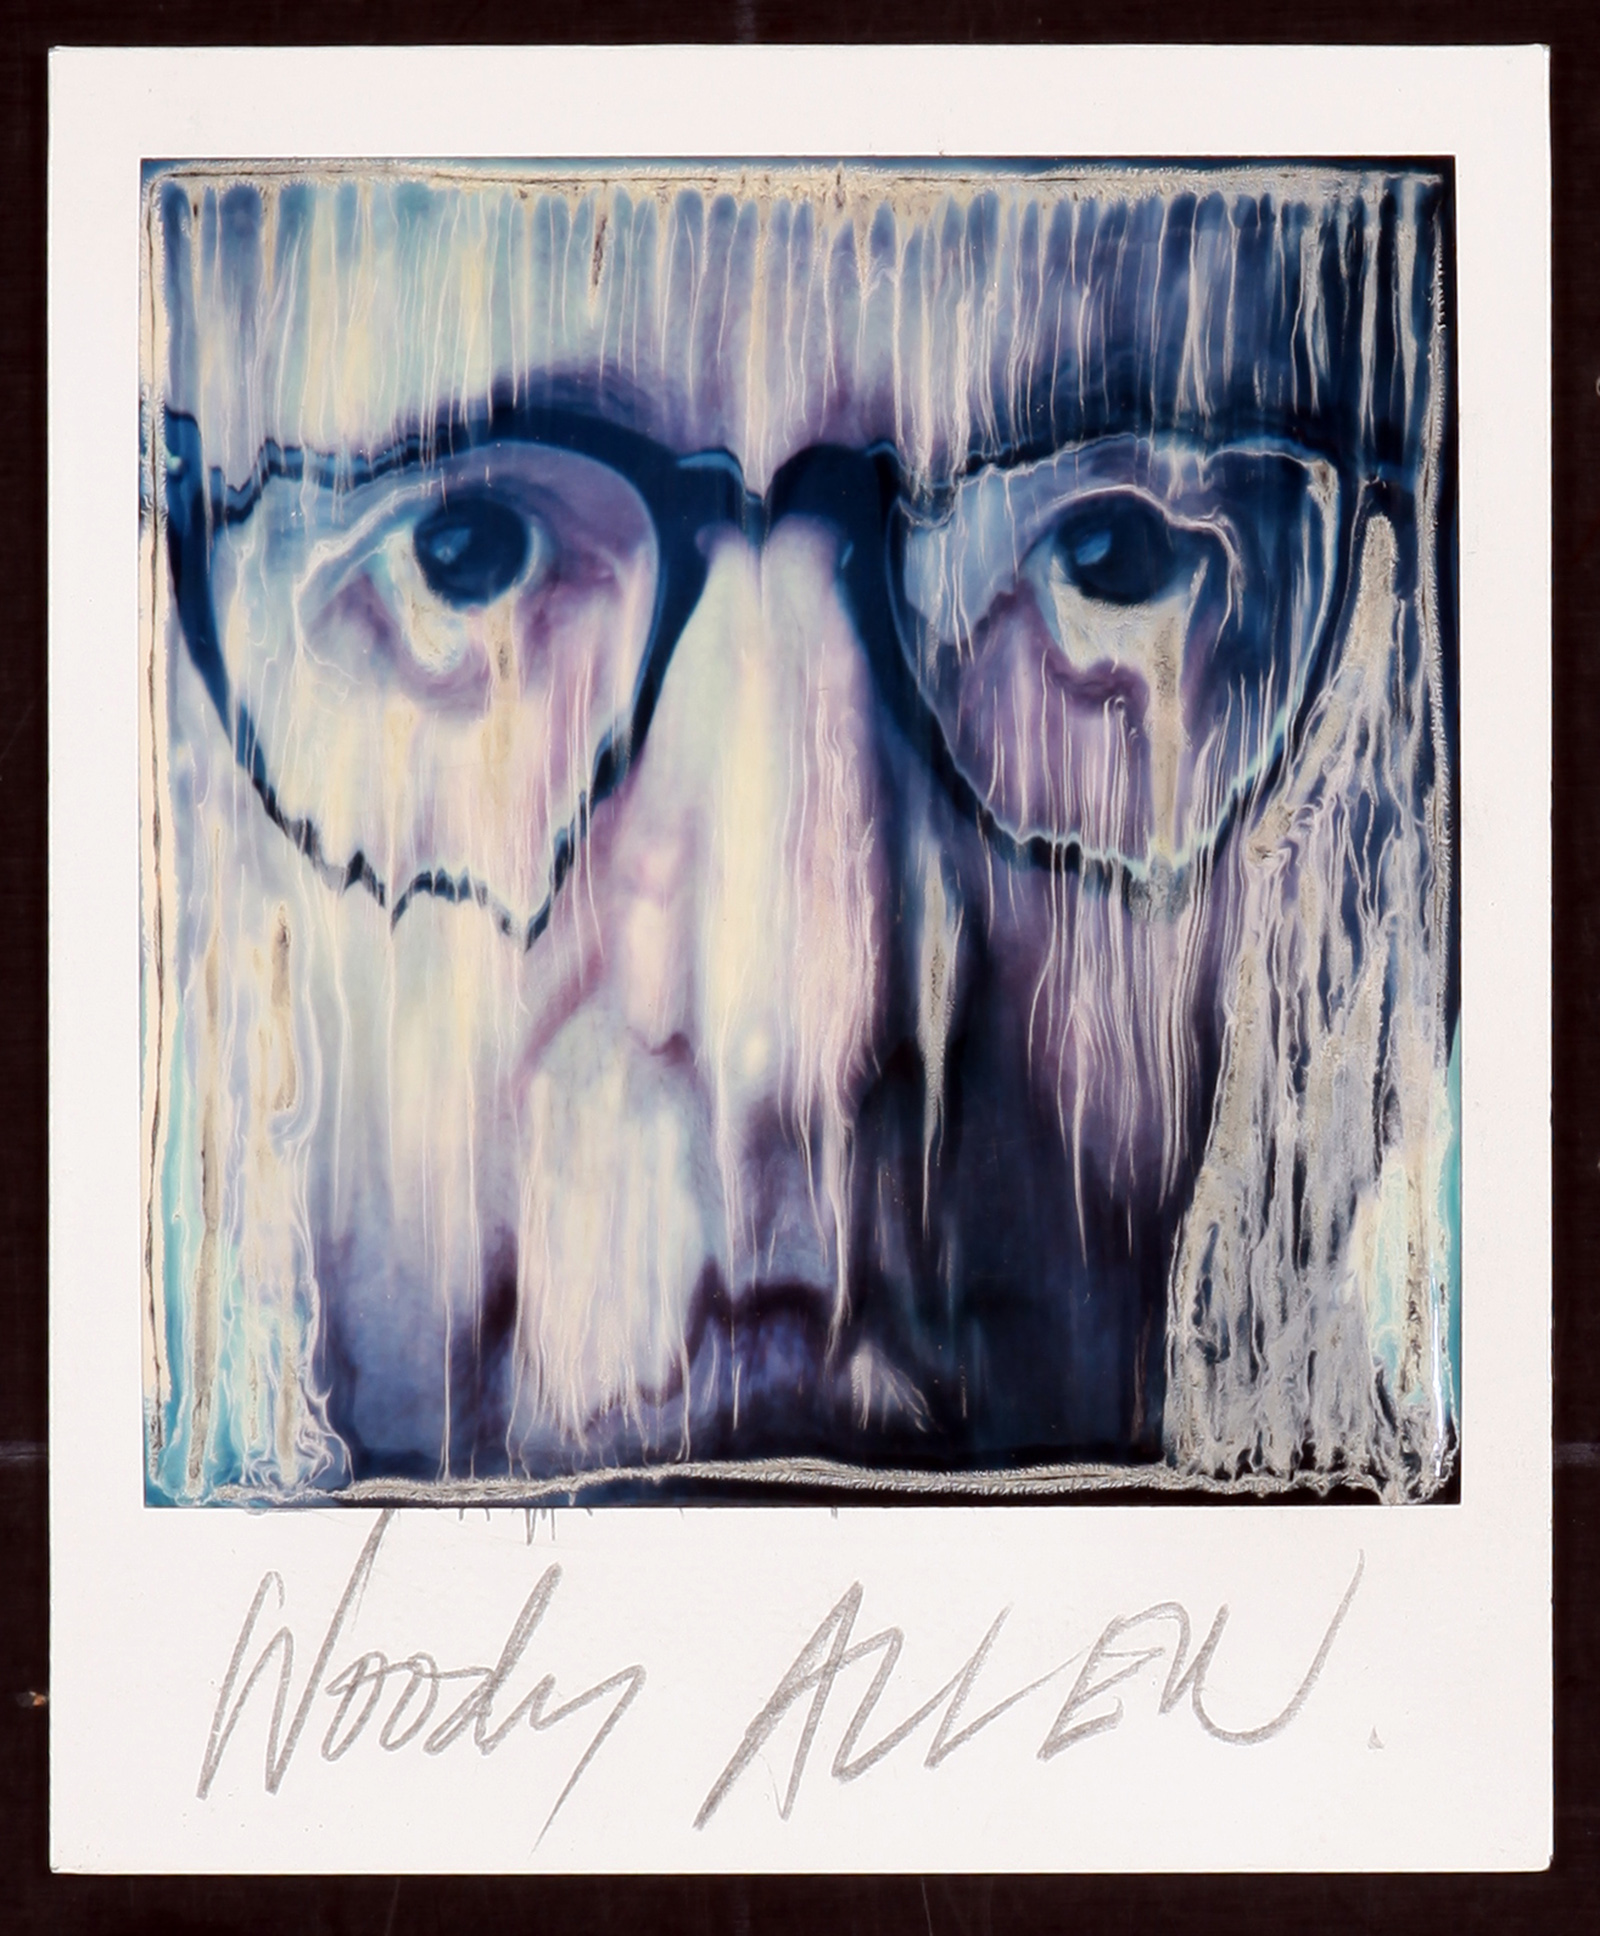 A portrait of Woody Allen using the photographic technique, Paranoids using a polaroid photo by Ralph Steadman